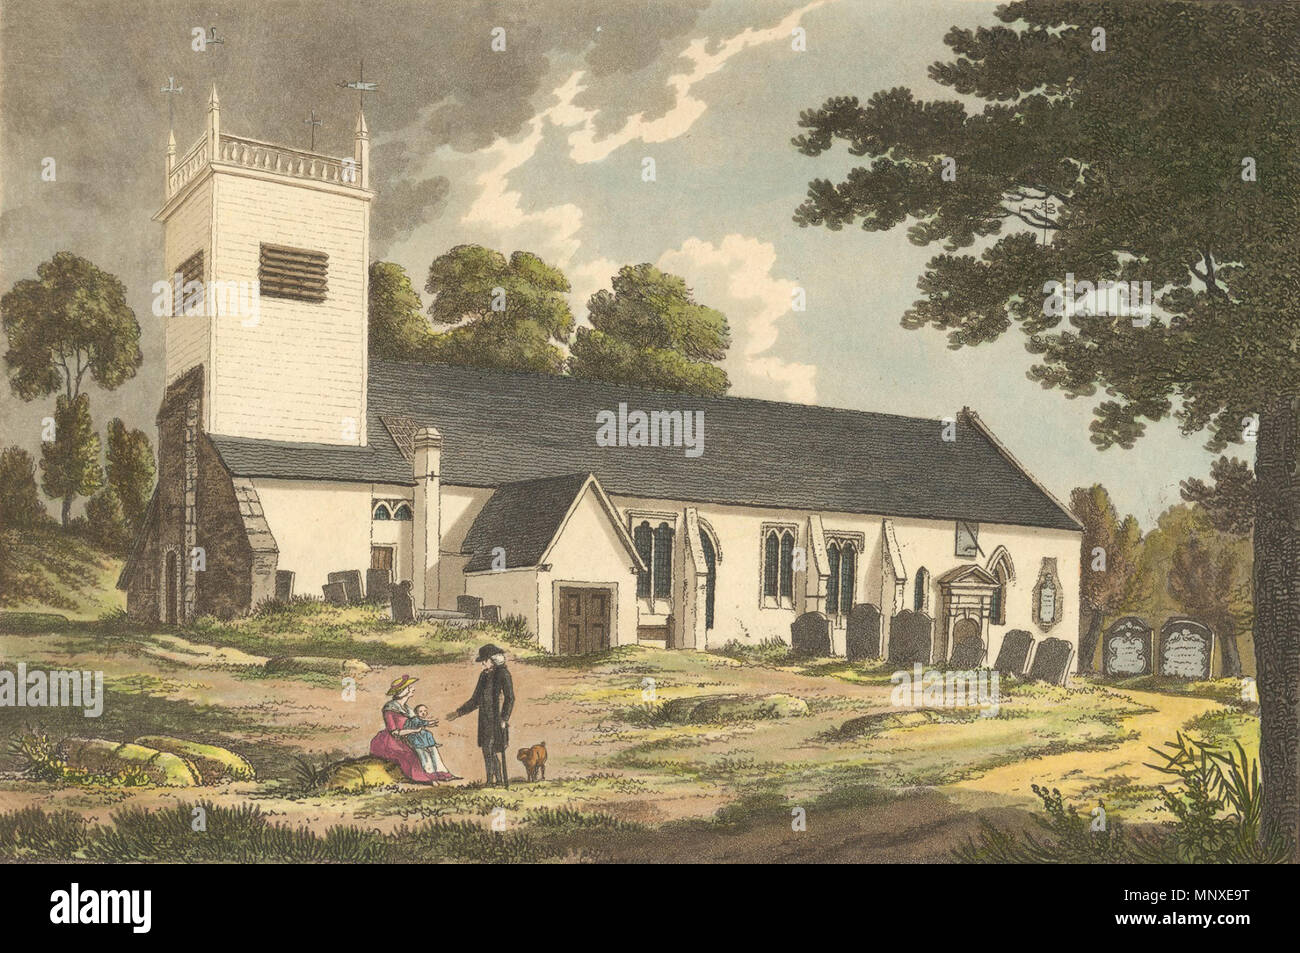 . English: St. Peter's Church, Caversham, Reading, from the south, showing the wooden tower and part of the churchyard. 1800-1809: print, drawn and engraved by Charles Tomkins, published 1804, from Tomkins' 'Views of Reading Abbey.' Black and white version at Dynix 1204766. between 1800 and 1809. Charles Tomkins 1139 St. Peter's Church, Caversham, 1800-1809 Stock Photo